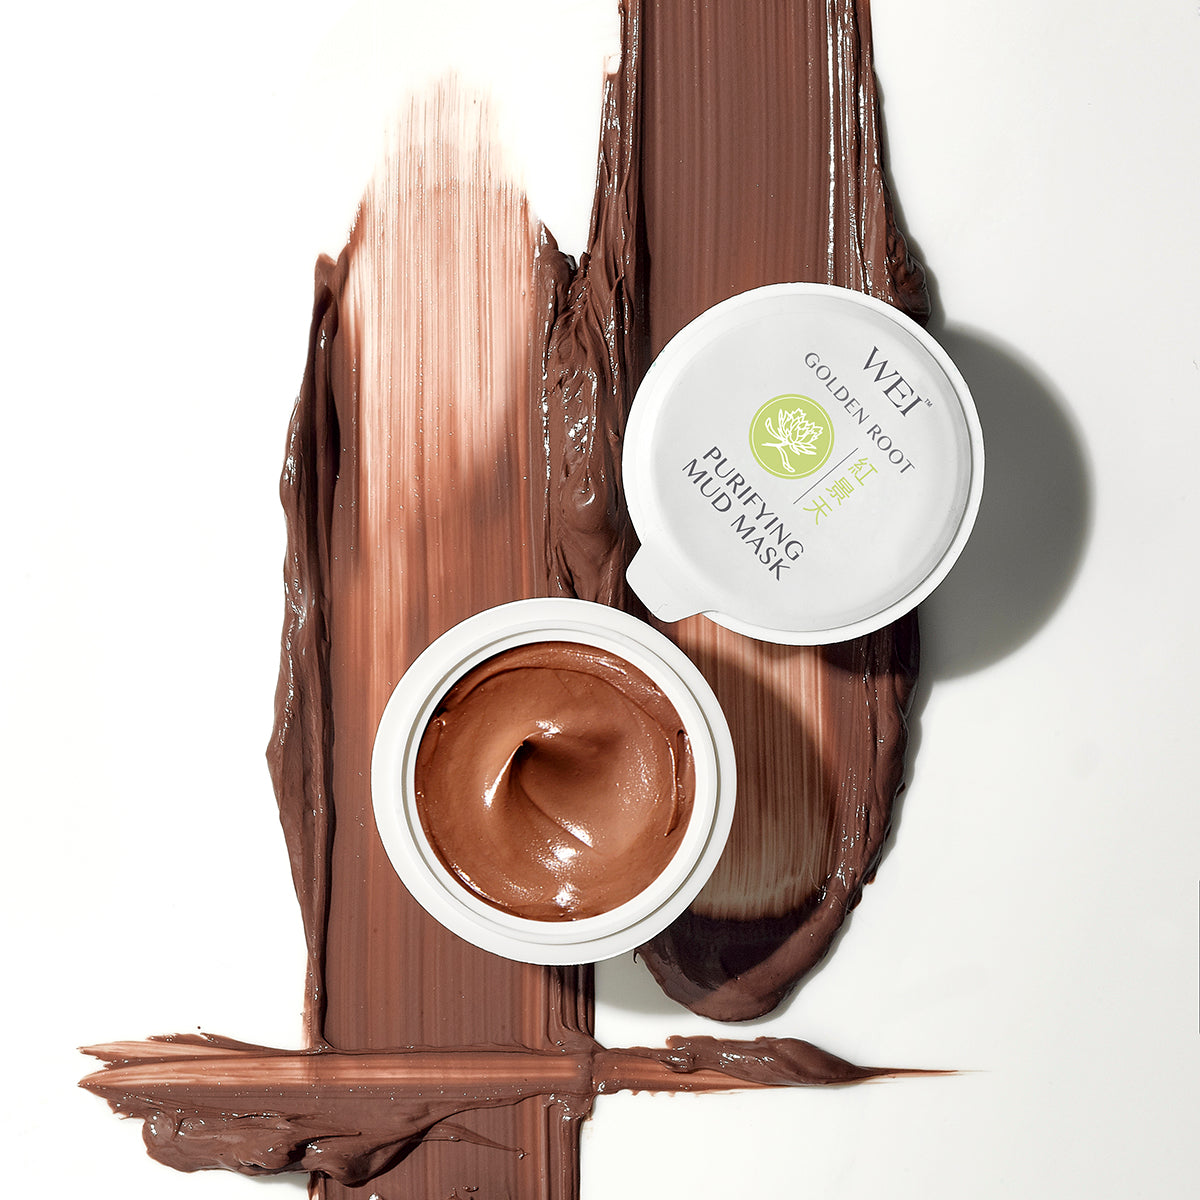 Golden Root Purifying Mud Mask deeply cleanses skin, purges toxins and impurities, and minimizes the appearance of pores and blemishes for an even, flawless complexion. Golden Root Purifying Mud Mask counteracts the oxidative causes of cell damage Pure China Clay absorbs toxins and removes dirt and dead skin cells. Jujube fruit extract has anti-inflammatory properties.